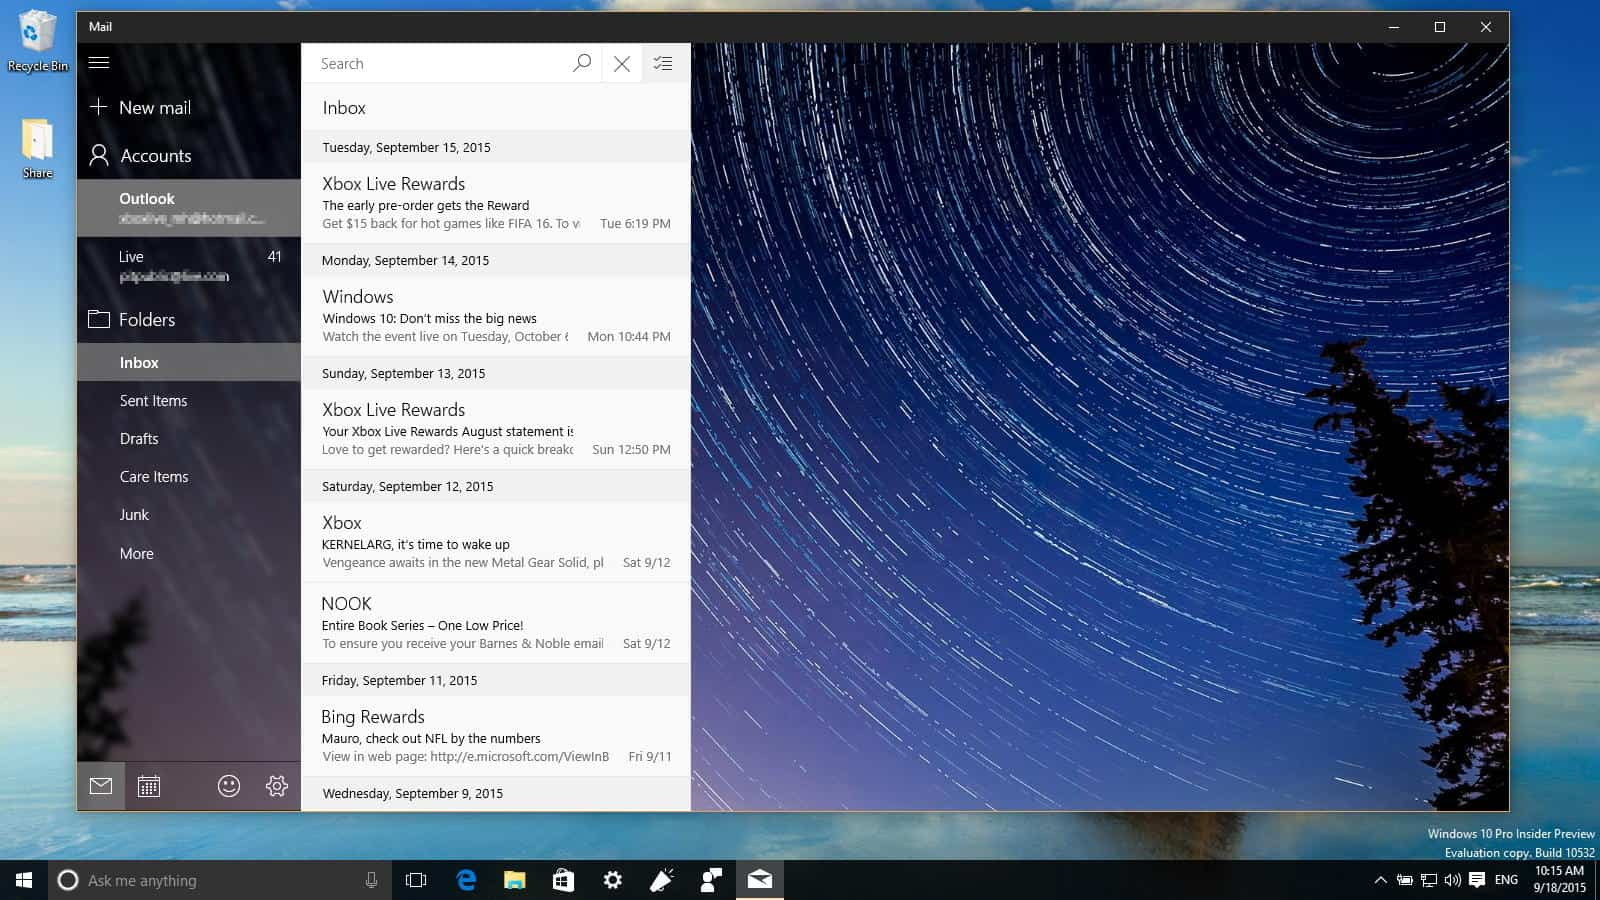 Windows Mail App